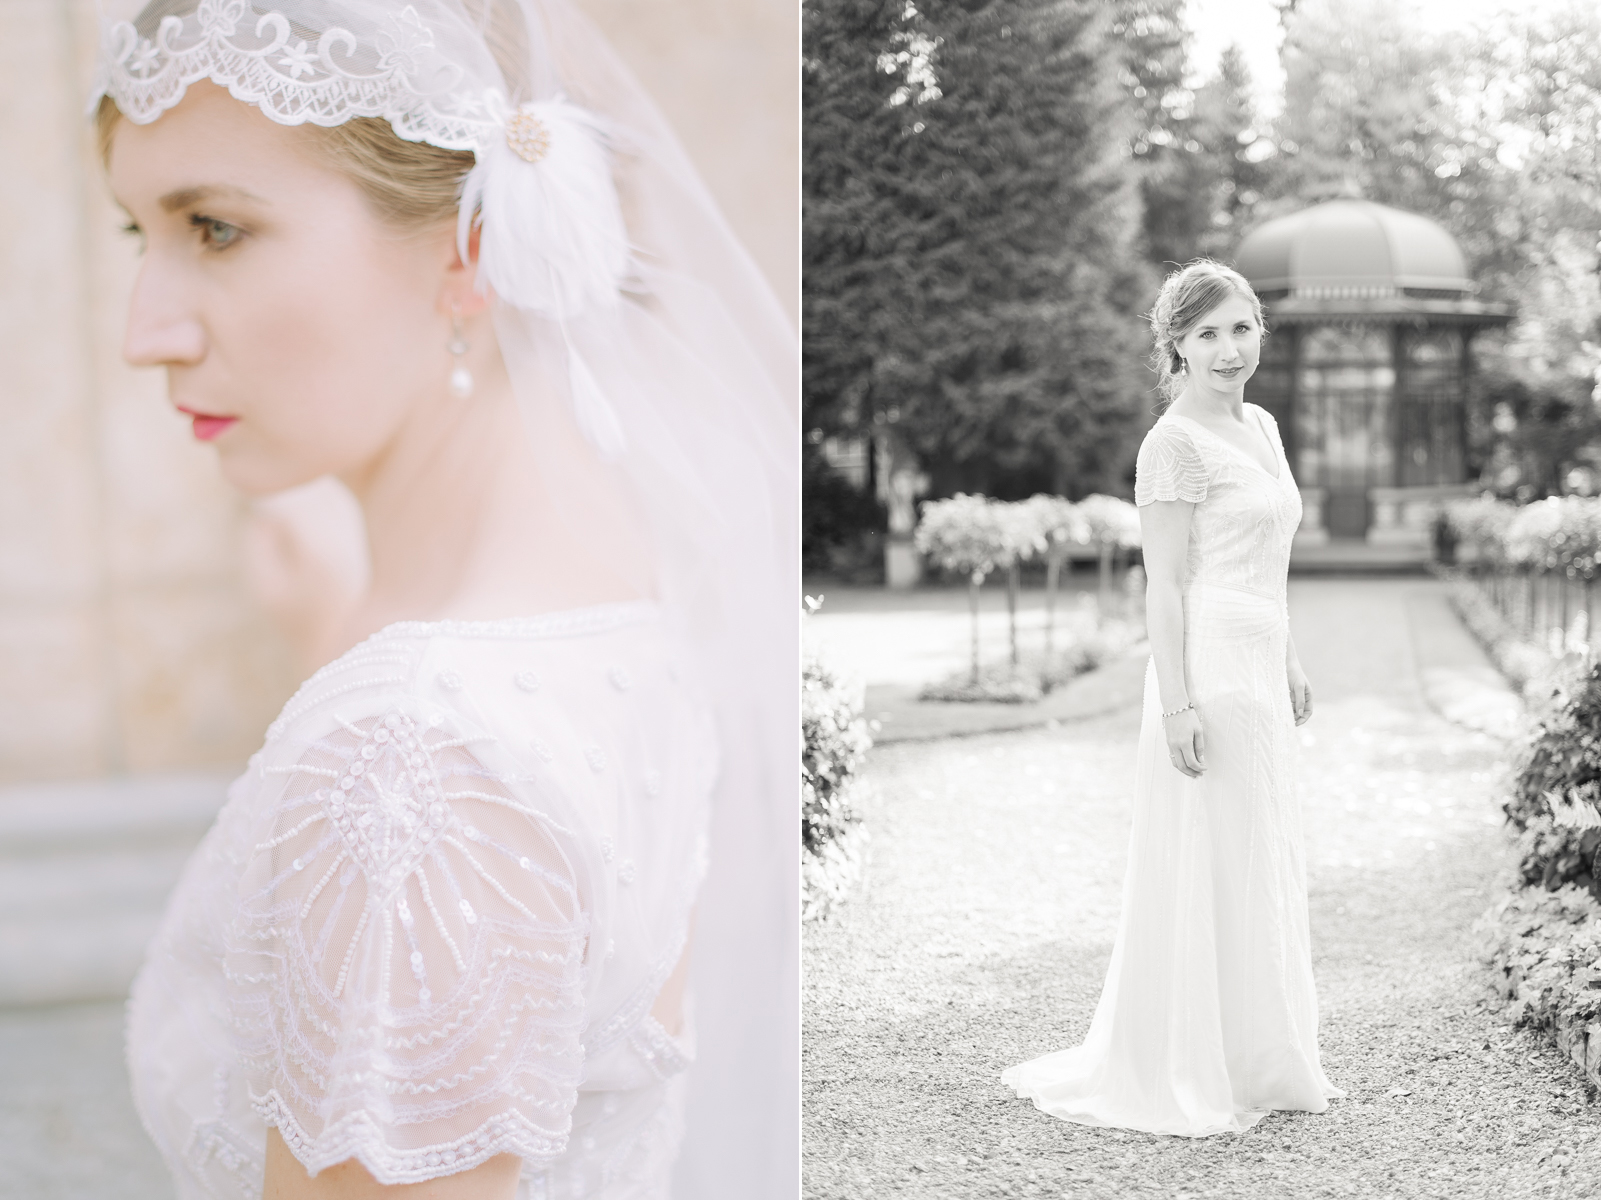 Boheme Moon Fine Art Wedding Photography - Elegant Bridal Portraits in Zurich, Schweiz